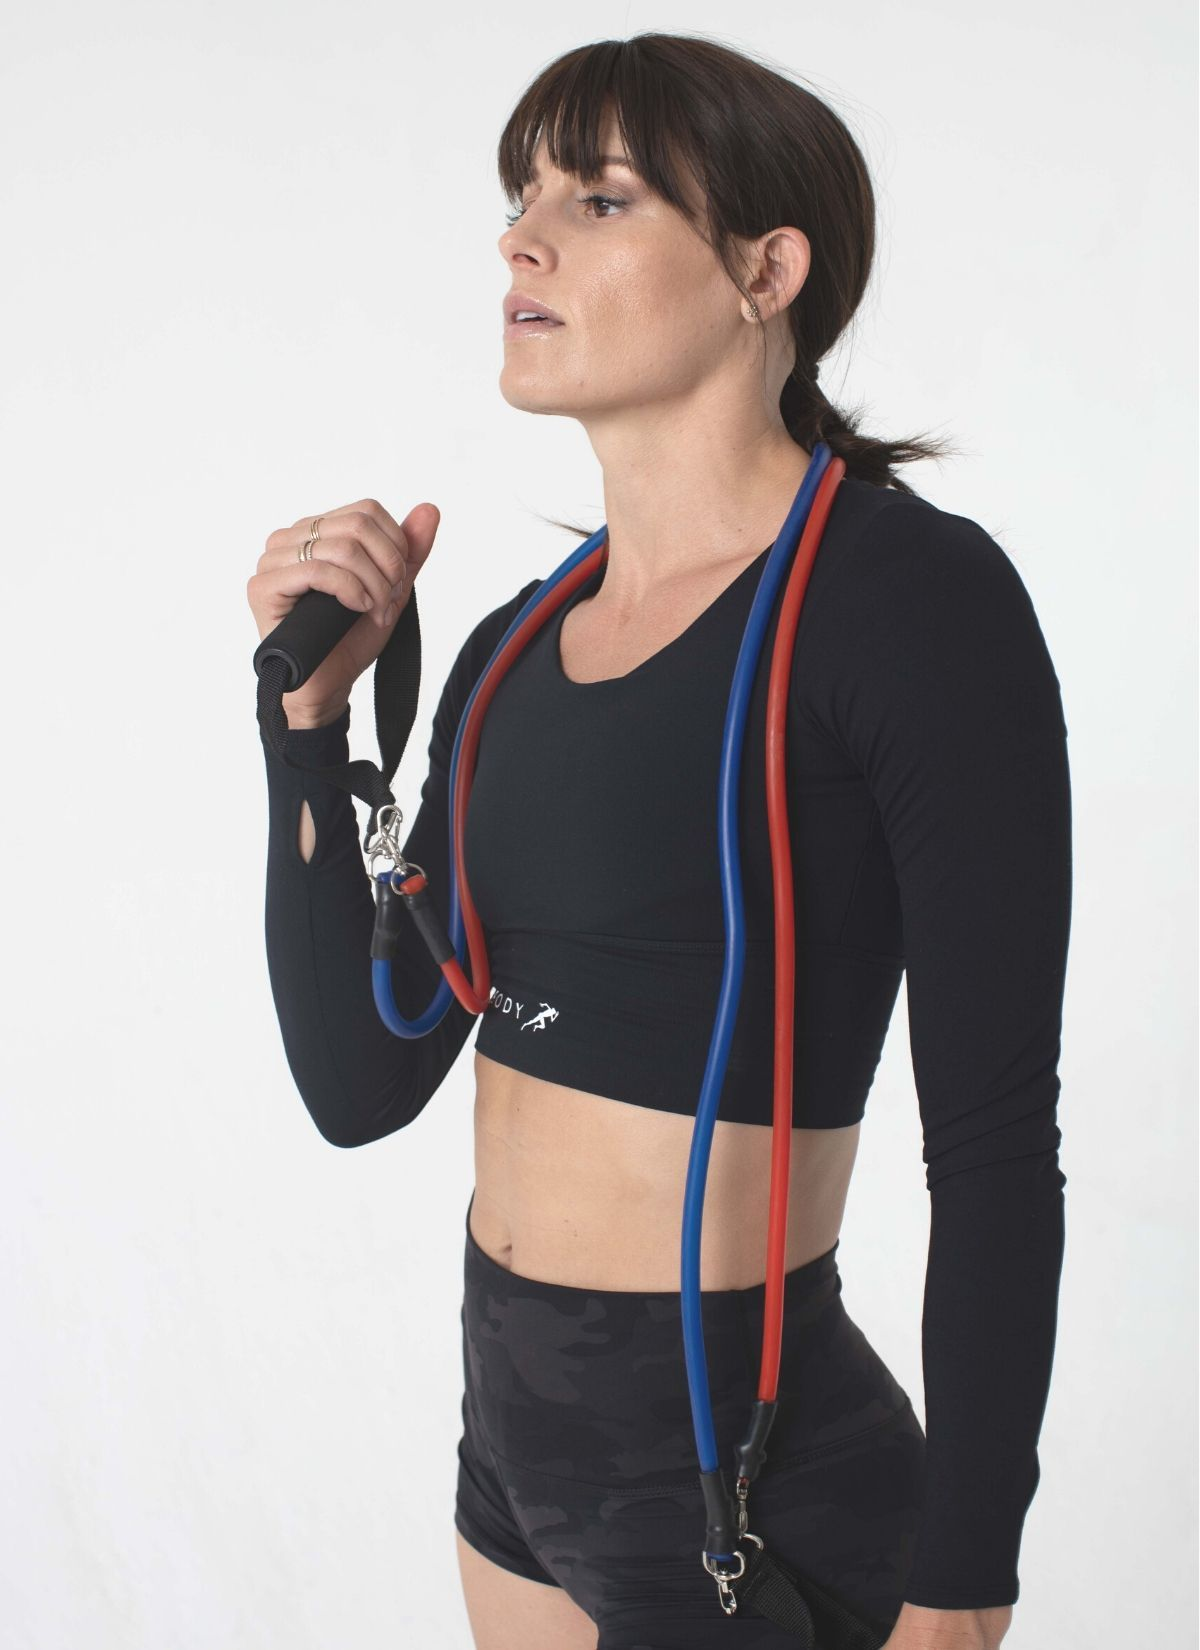 Athlete Body™ Resistance Bands Set